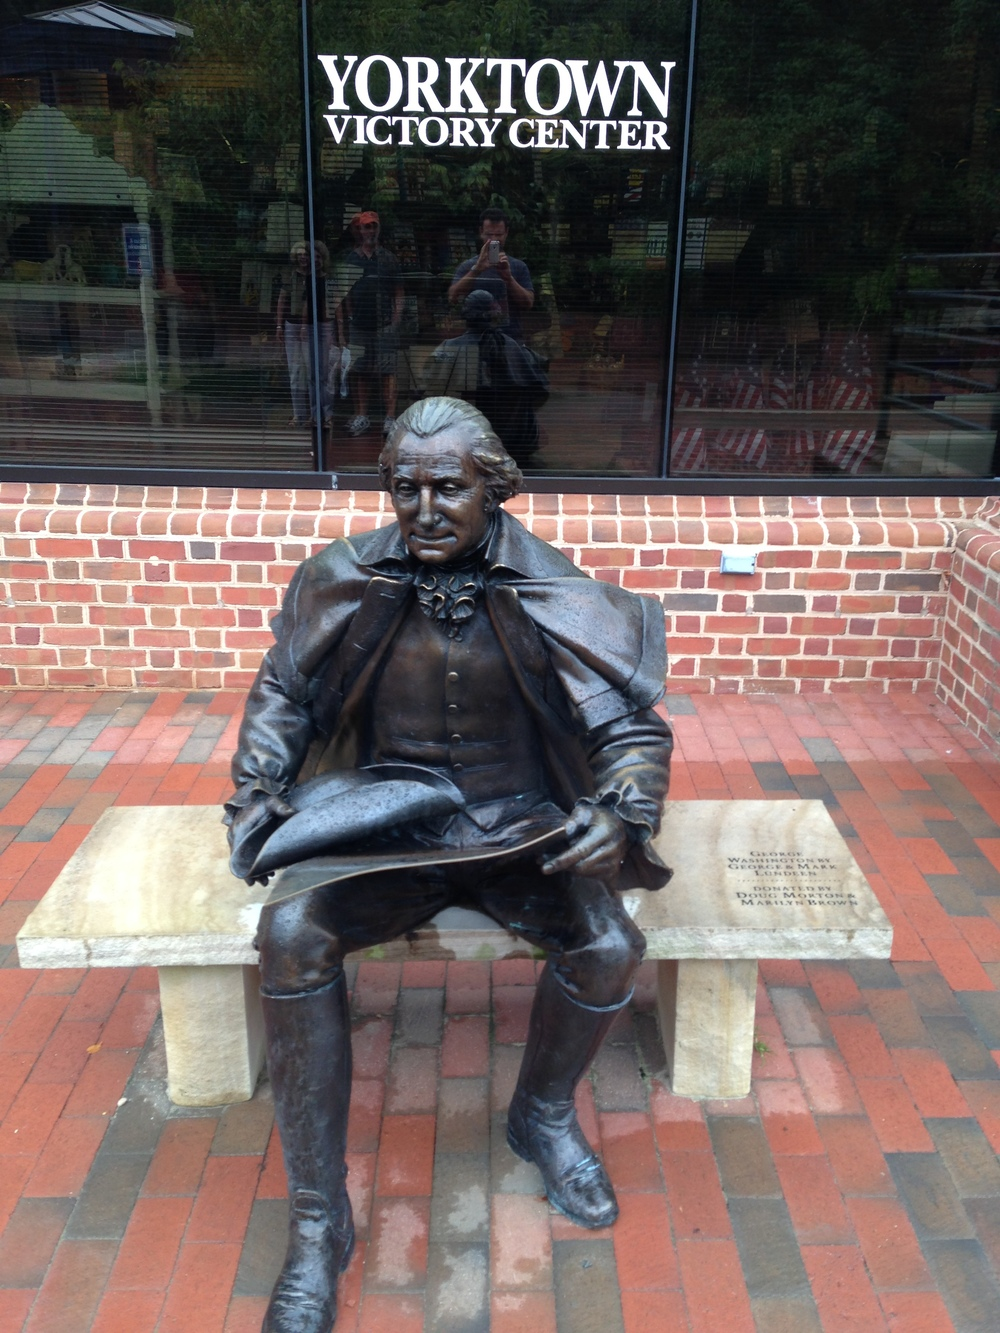 Outside the Yorktown Victory Center, George Washington sits in anxious contemplation of the ongoing siege.  He also looks constipated.